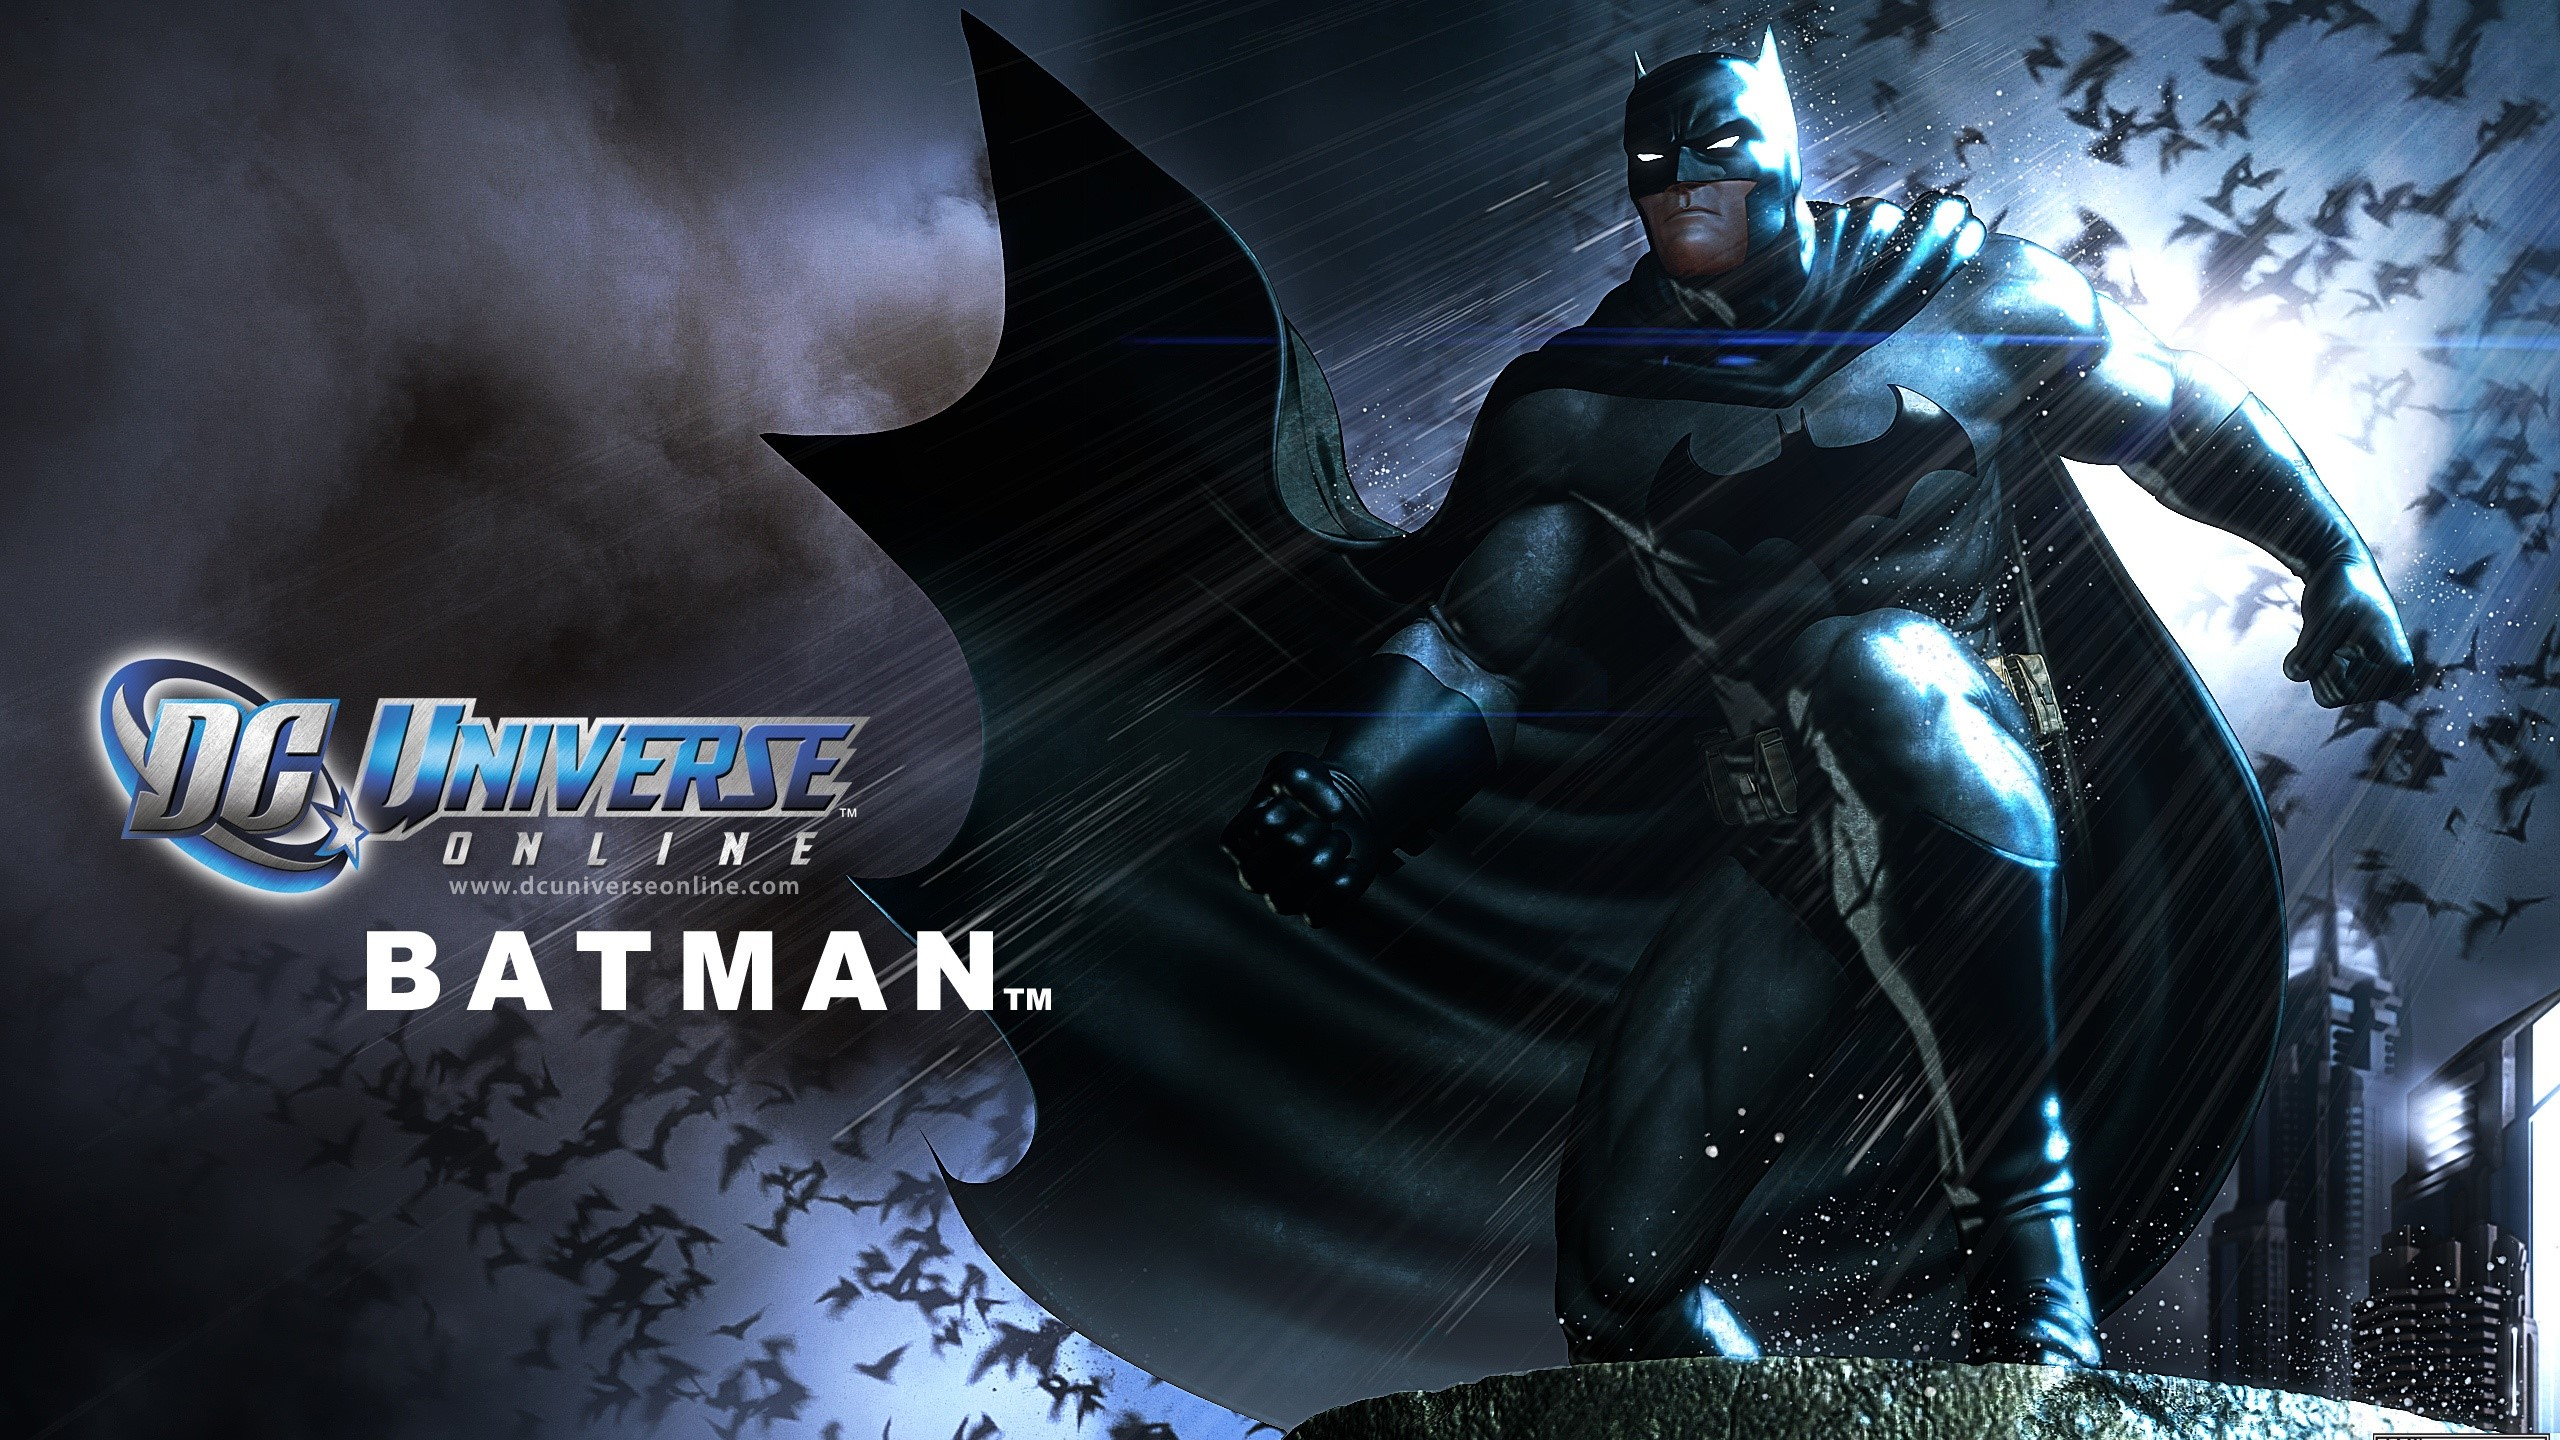 Wallpaper Batman en DC comics Images